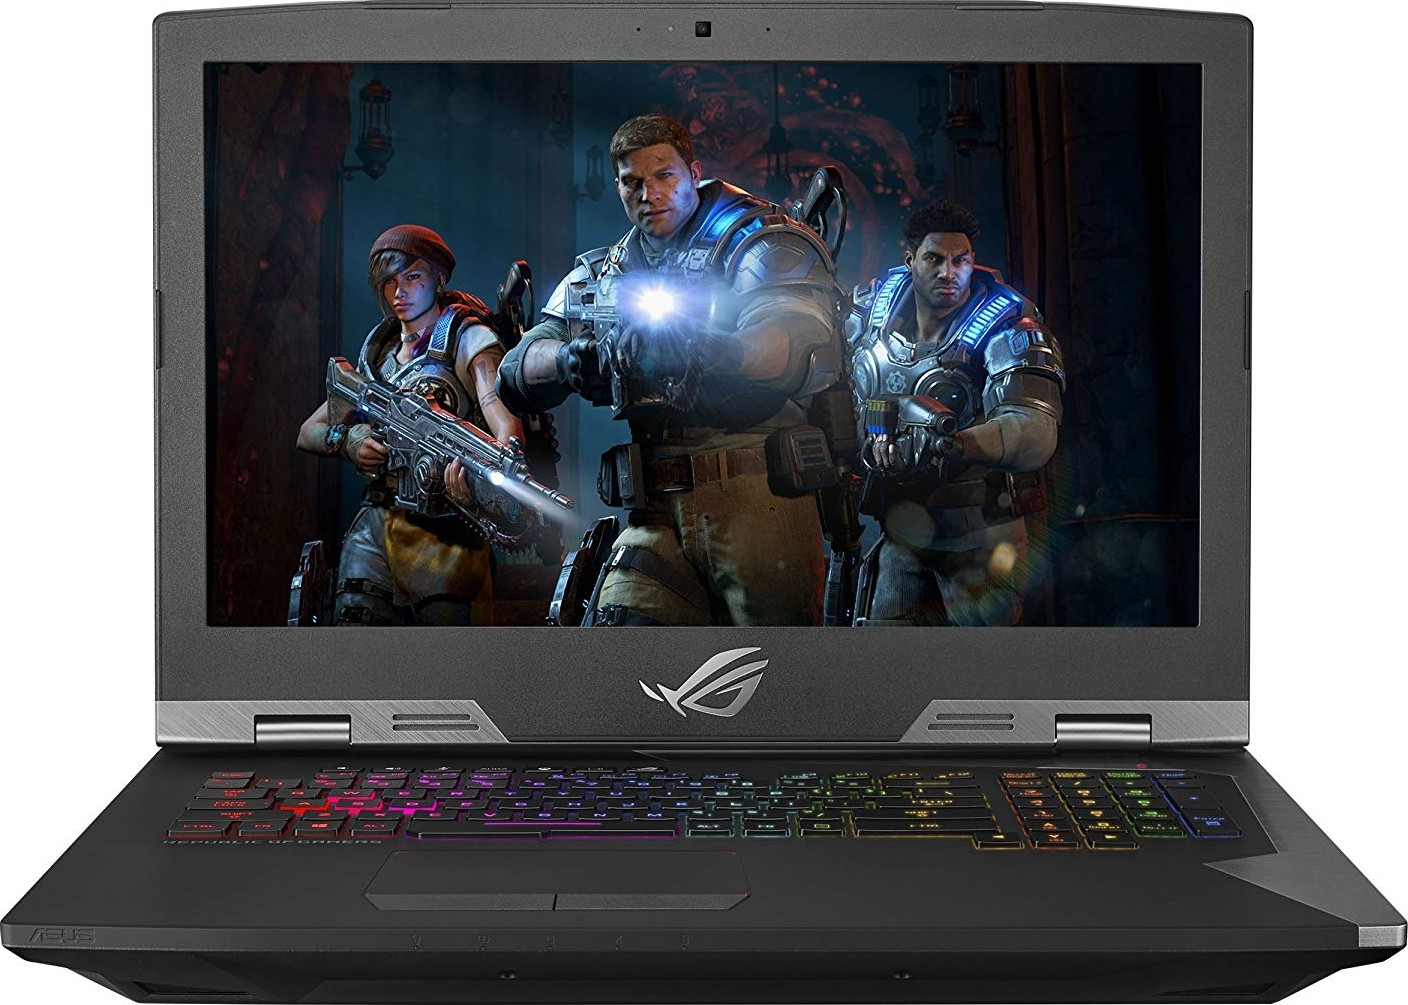 Asus ROG G703GXR Gaming Laptop, 17 3 144Hz 3ms G SYNC, Intel Core i9 9980HK  Processor, Nvidia RTX